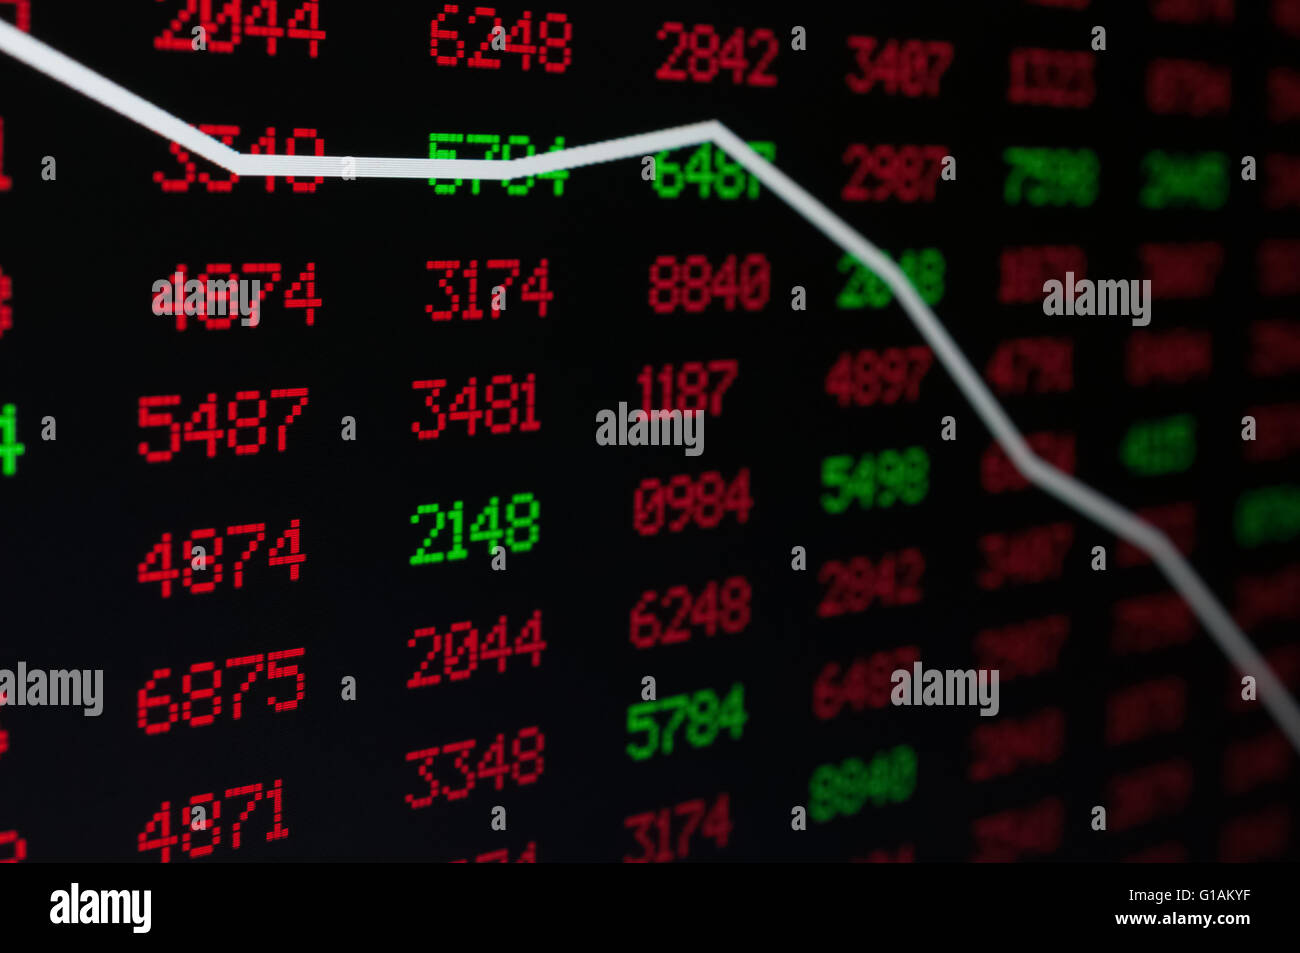 Stock Market - Arrow Graph Going Down on Display With Red and Green Figures - Shallow Depth Of Field - Stock Image